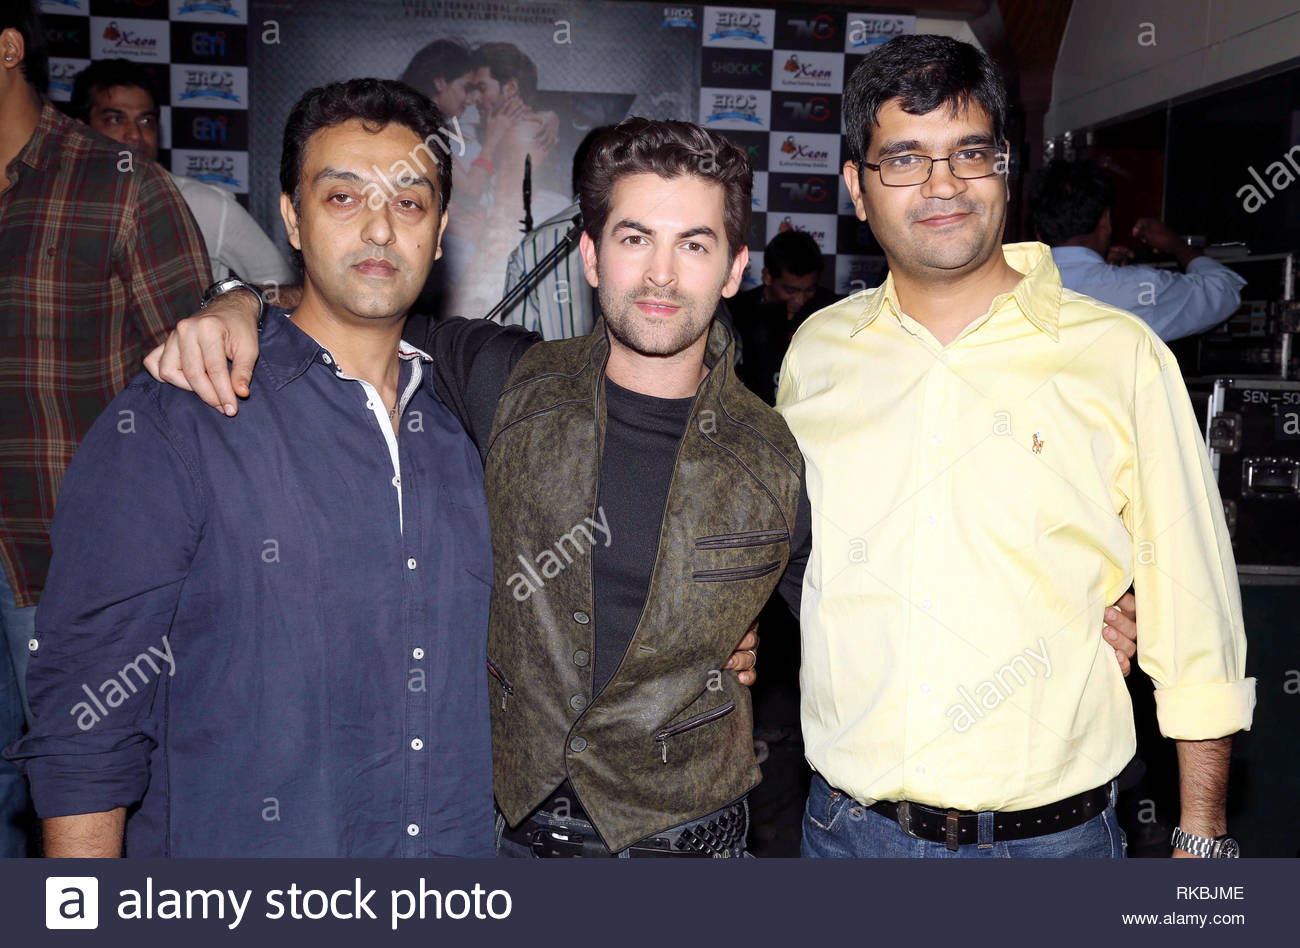 Bollywood actor Neil Nitin Mukesh with filmmakers Sheershak Anand (L) and Shantanu Ray Chhibber pose during the music launch of his upcoming film 3G in Mumbai, India on February 26, 2013. The Bollywood thriller film written and directed by Shantanu Ray Chhibber and Sheershak Anand will hit the theaters on March 15, 2013. (Aakash Berde) - Stock Image